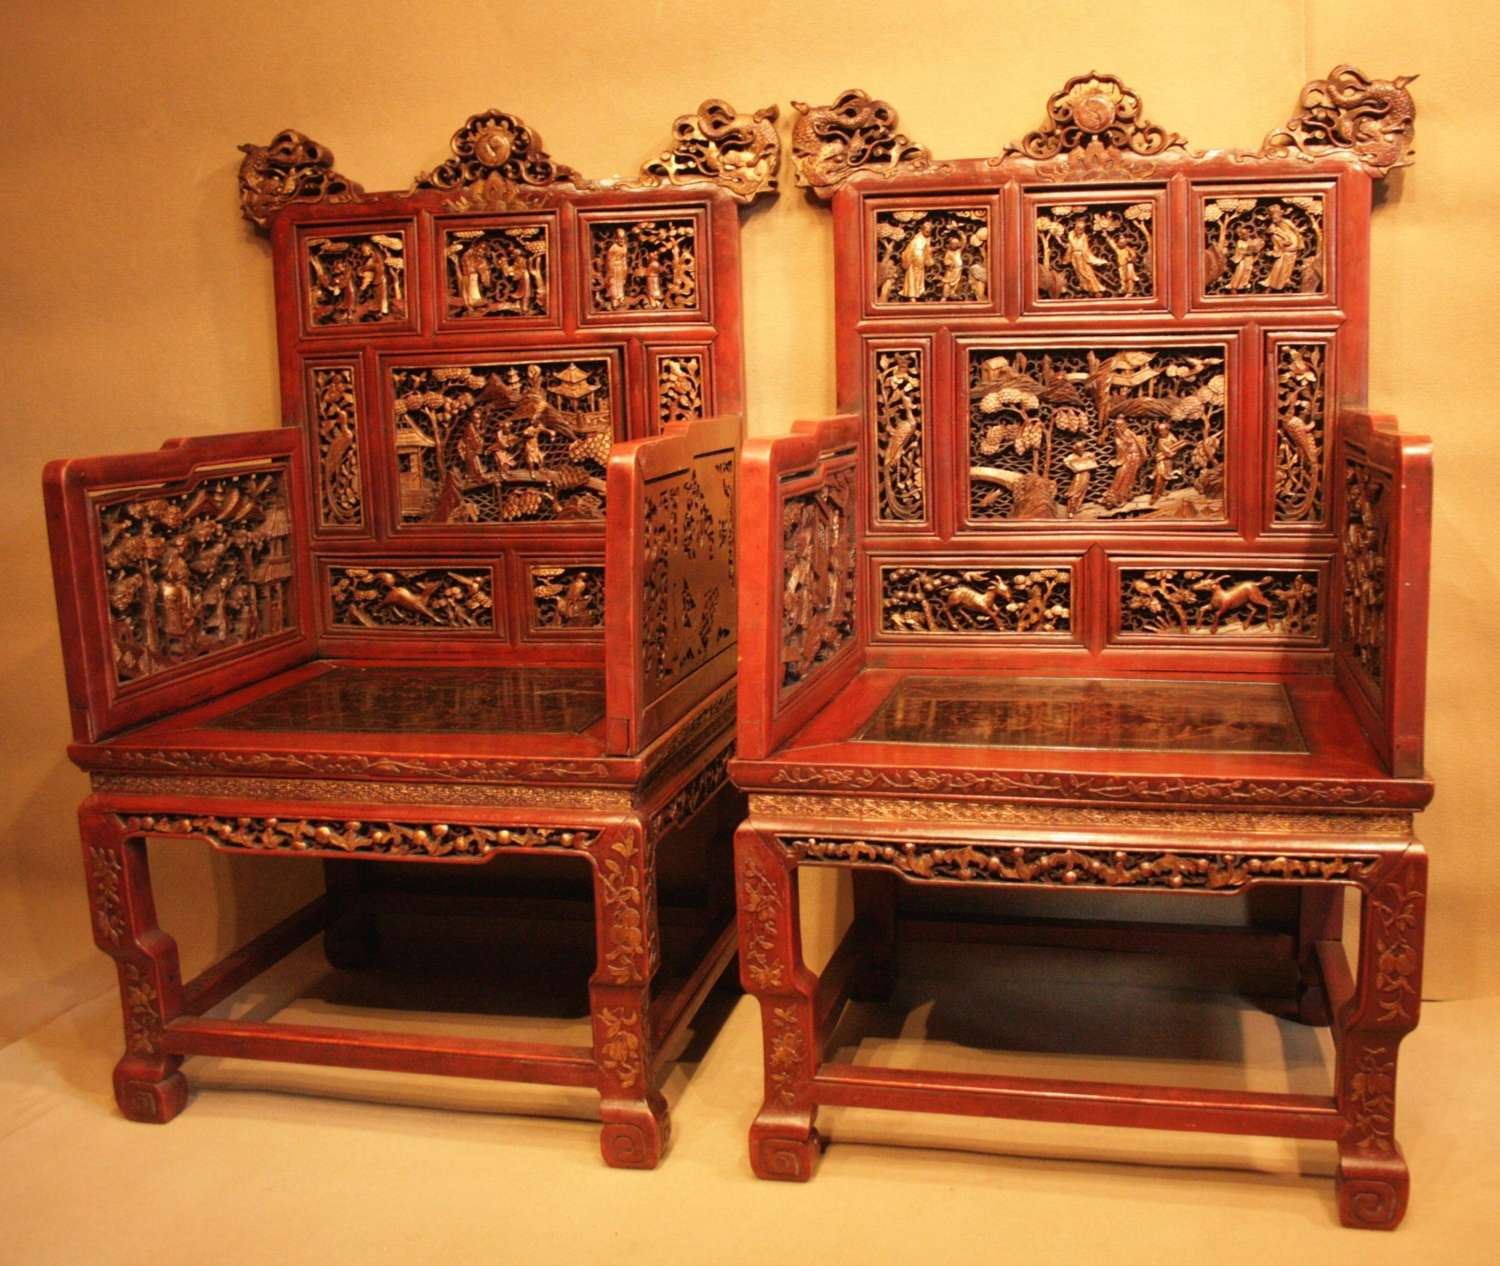 A  Highly Decorative Pair Of Chinese Throne Chairs